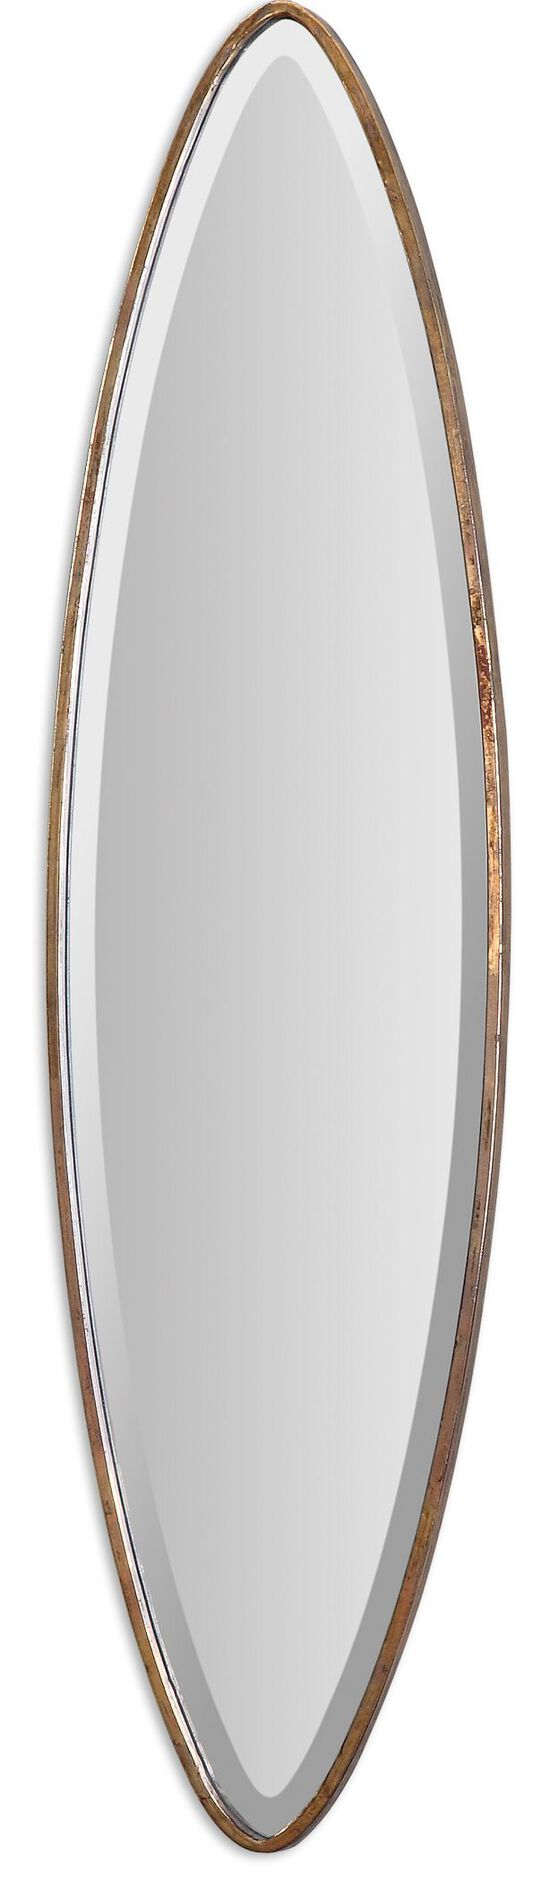 46'' Marquise Accent Mirror in Antiqued Gold